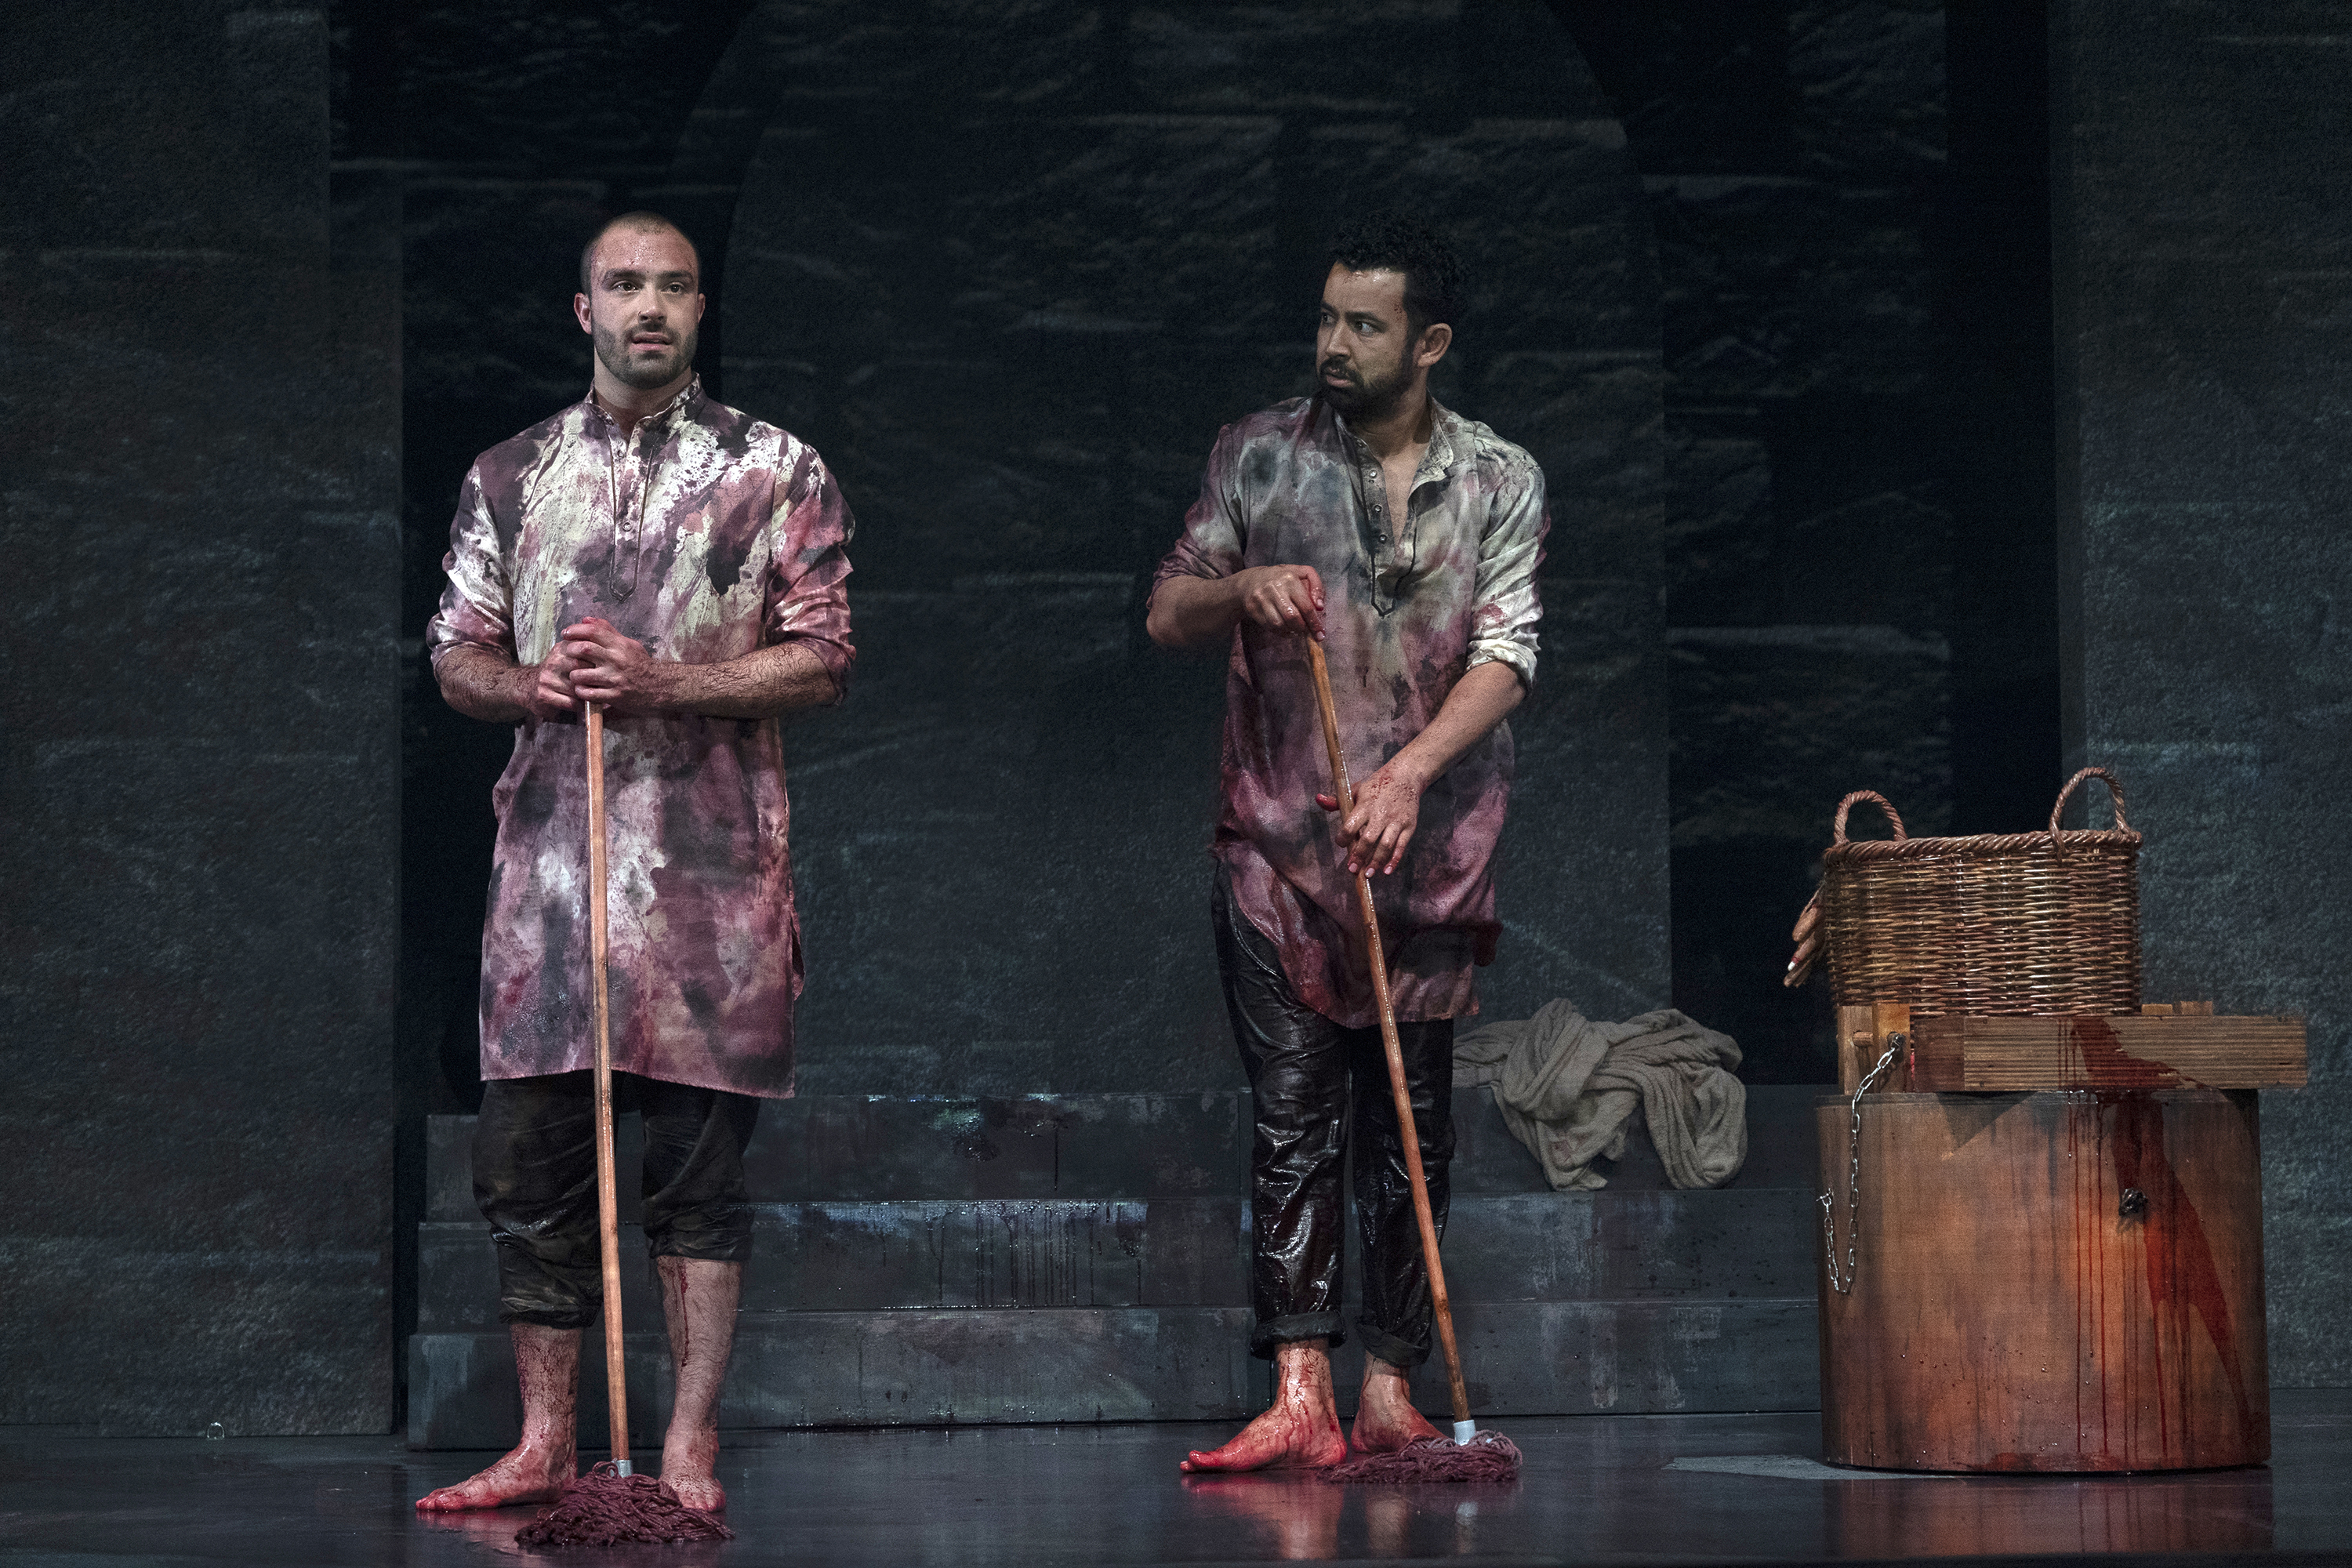 Jay Saighal is a British actor who has worked on the stage and screen while Ghafir is a Malaysian actor. Photo courtesy: Singapore Repertory Theatre